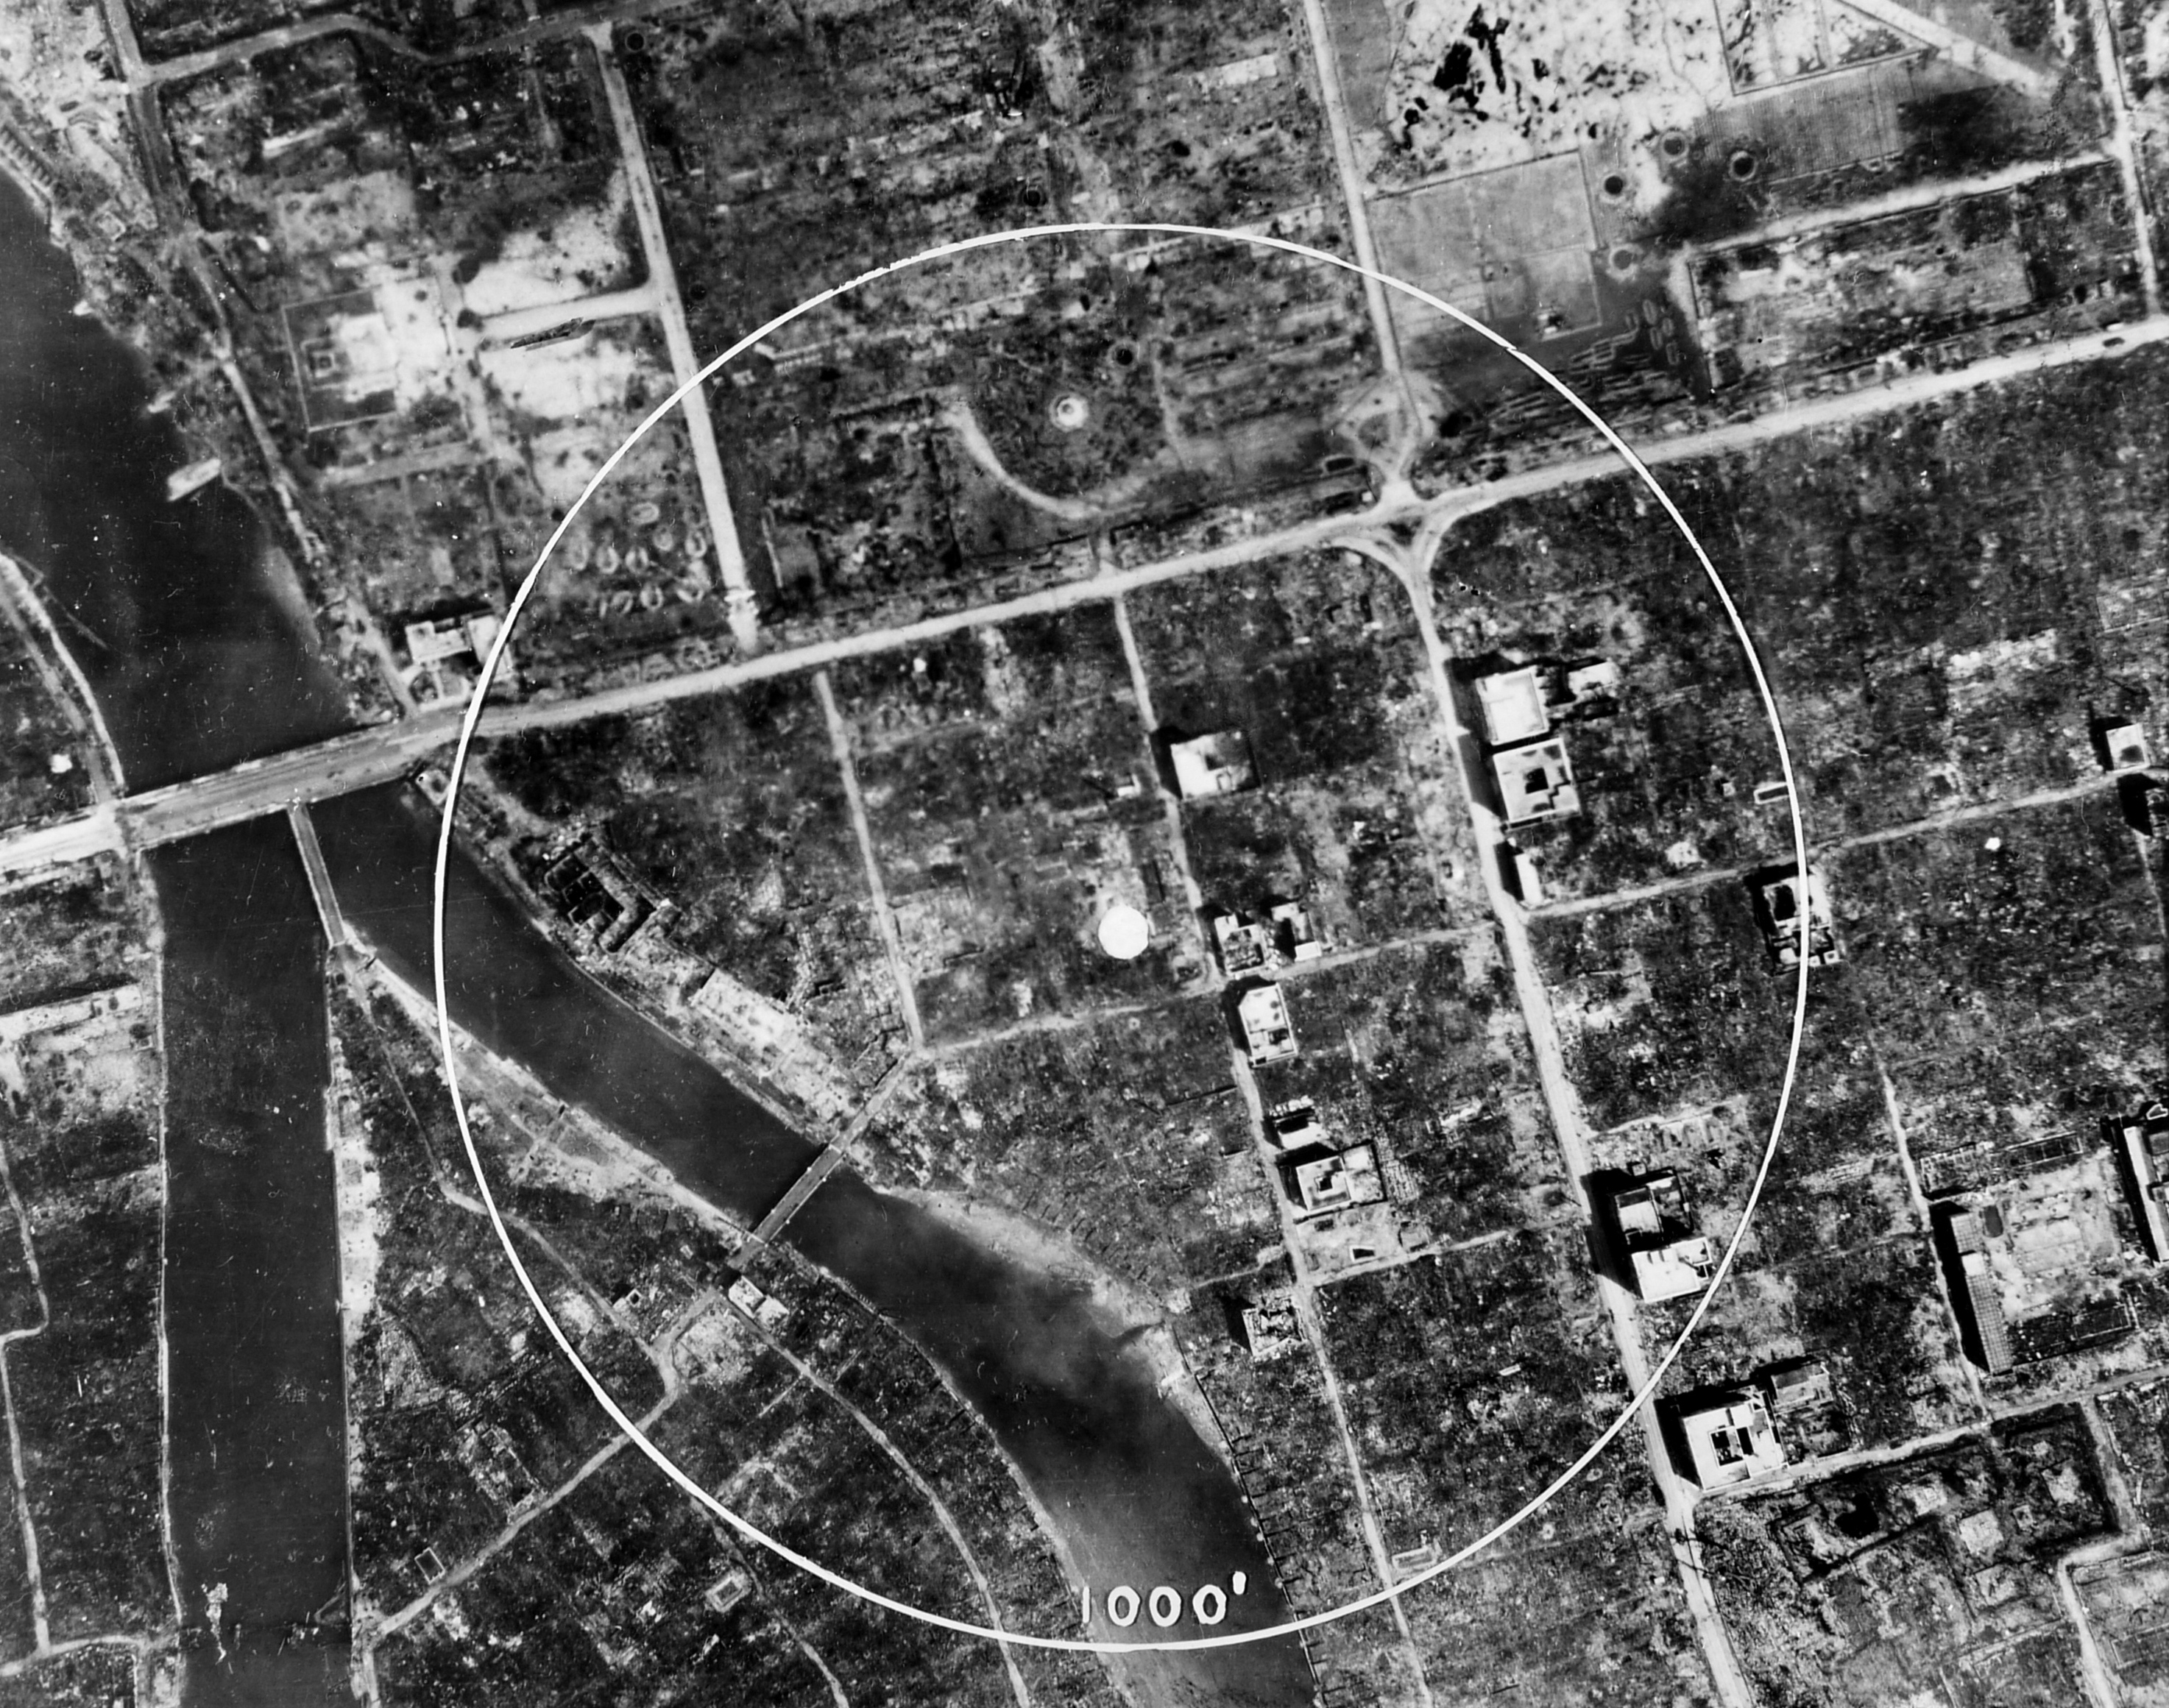 atomic bombing of hiroshima and nagesaki essay The atomic bomb essay  the atomic bombing of hiroshima and nagasaki was a decisive manoeuvre on part of the united states that brought a much-needed end to a.